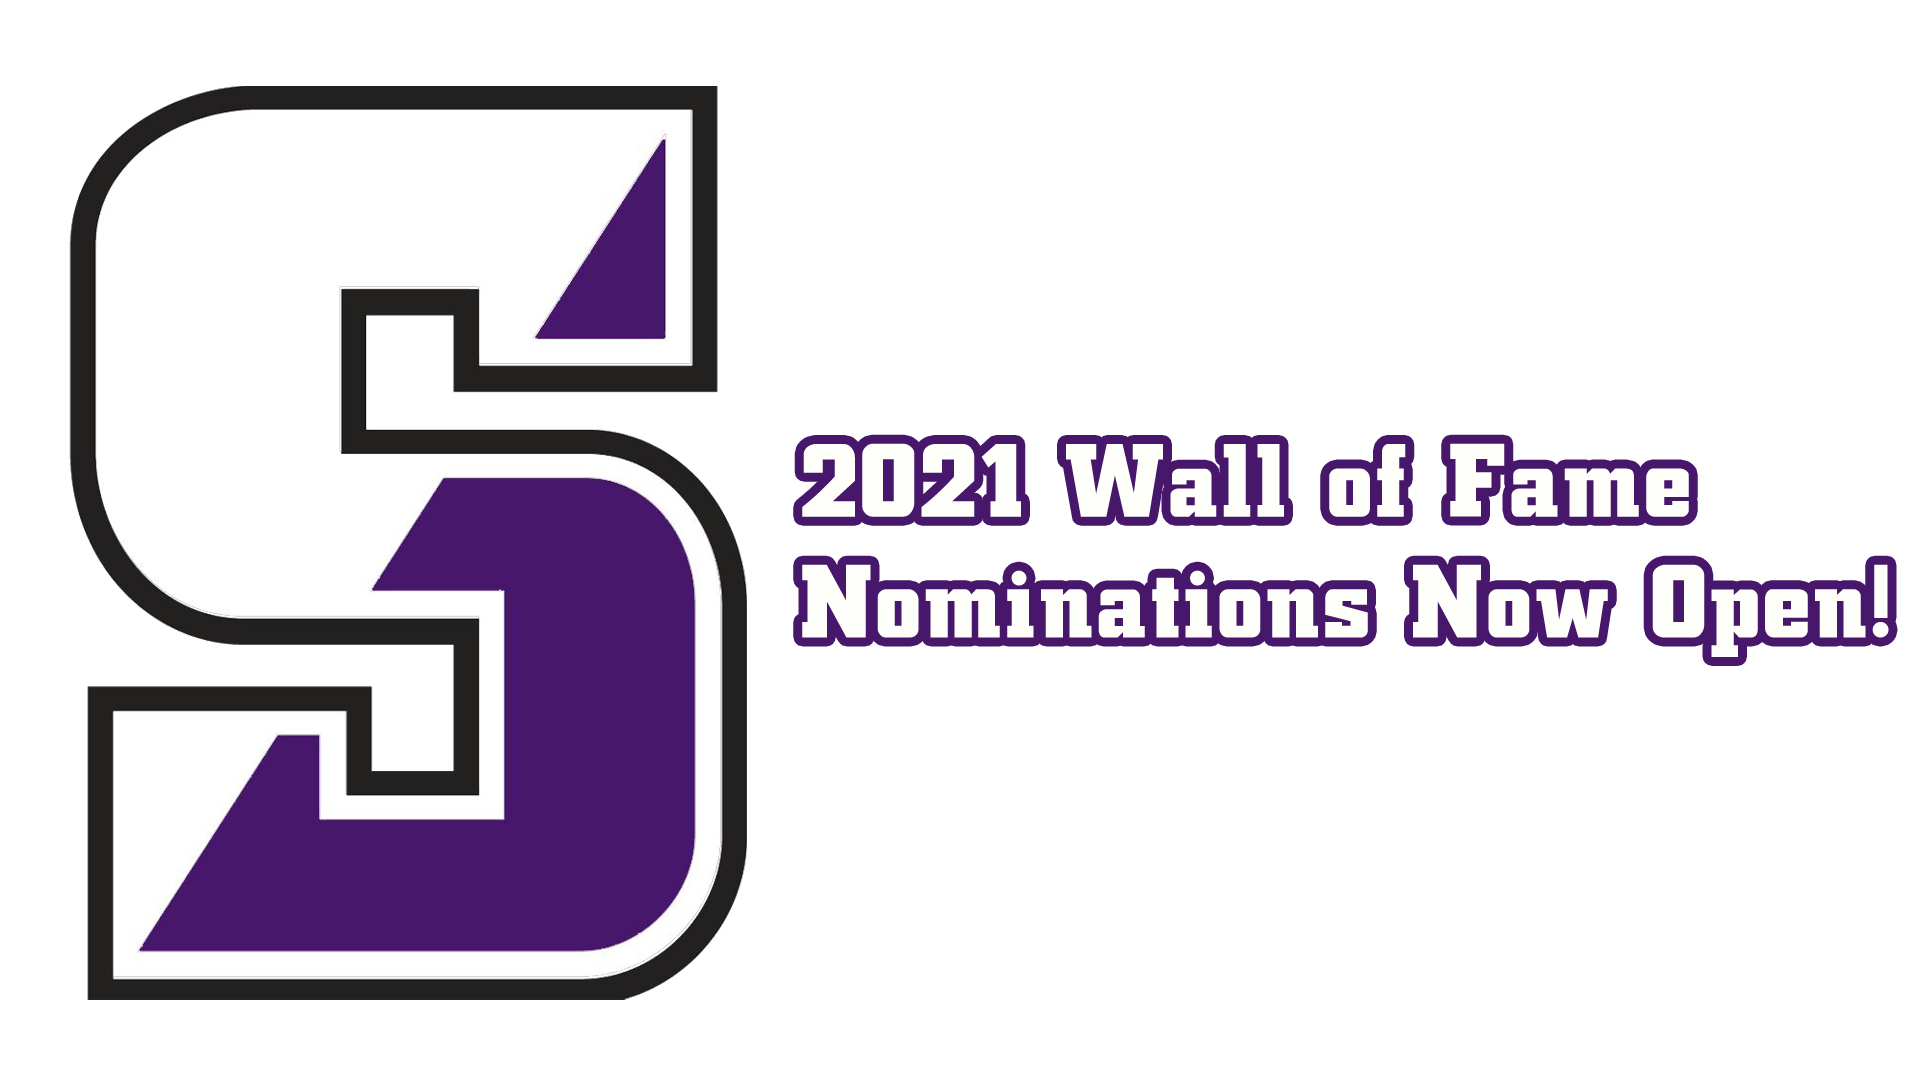 Wall of Fame Nominations Now Being Accepted